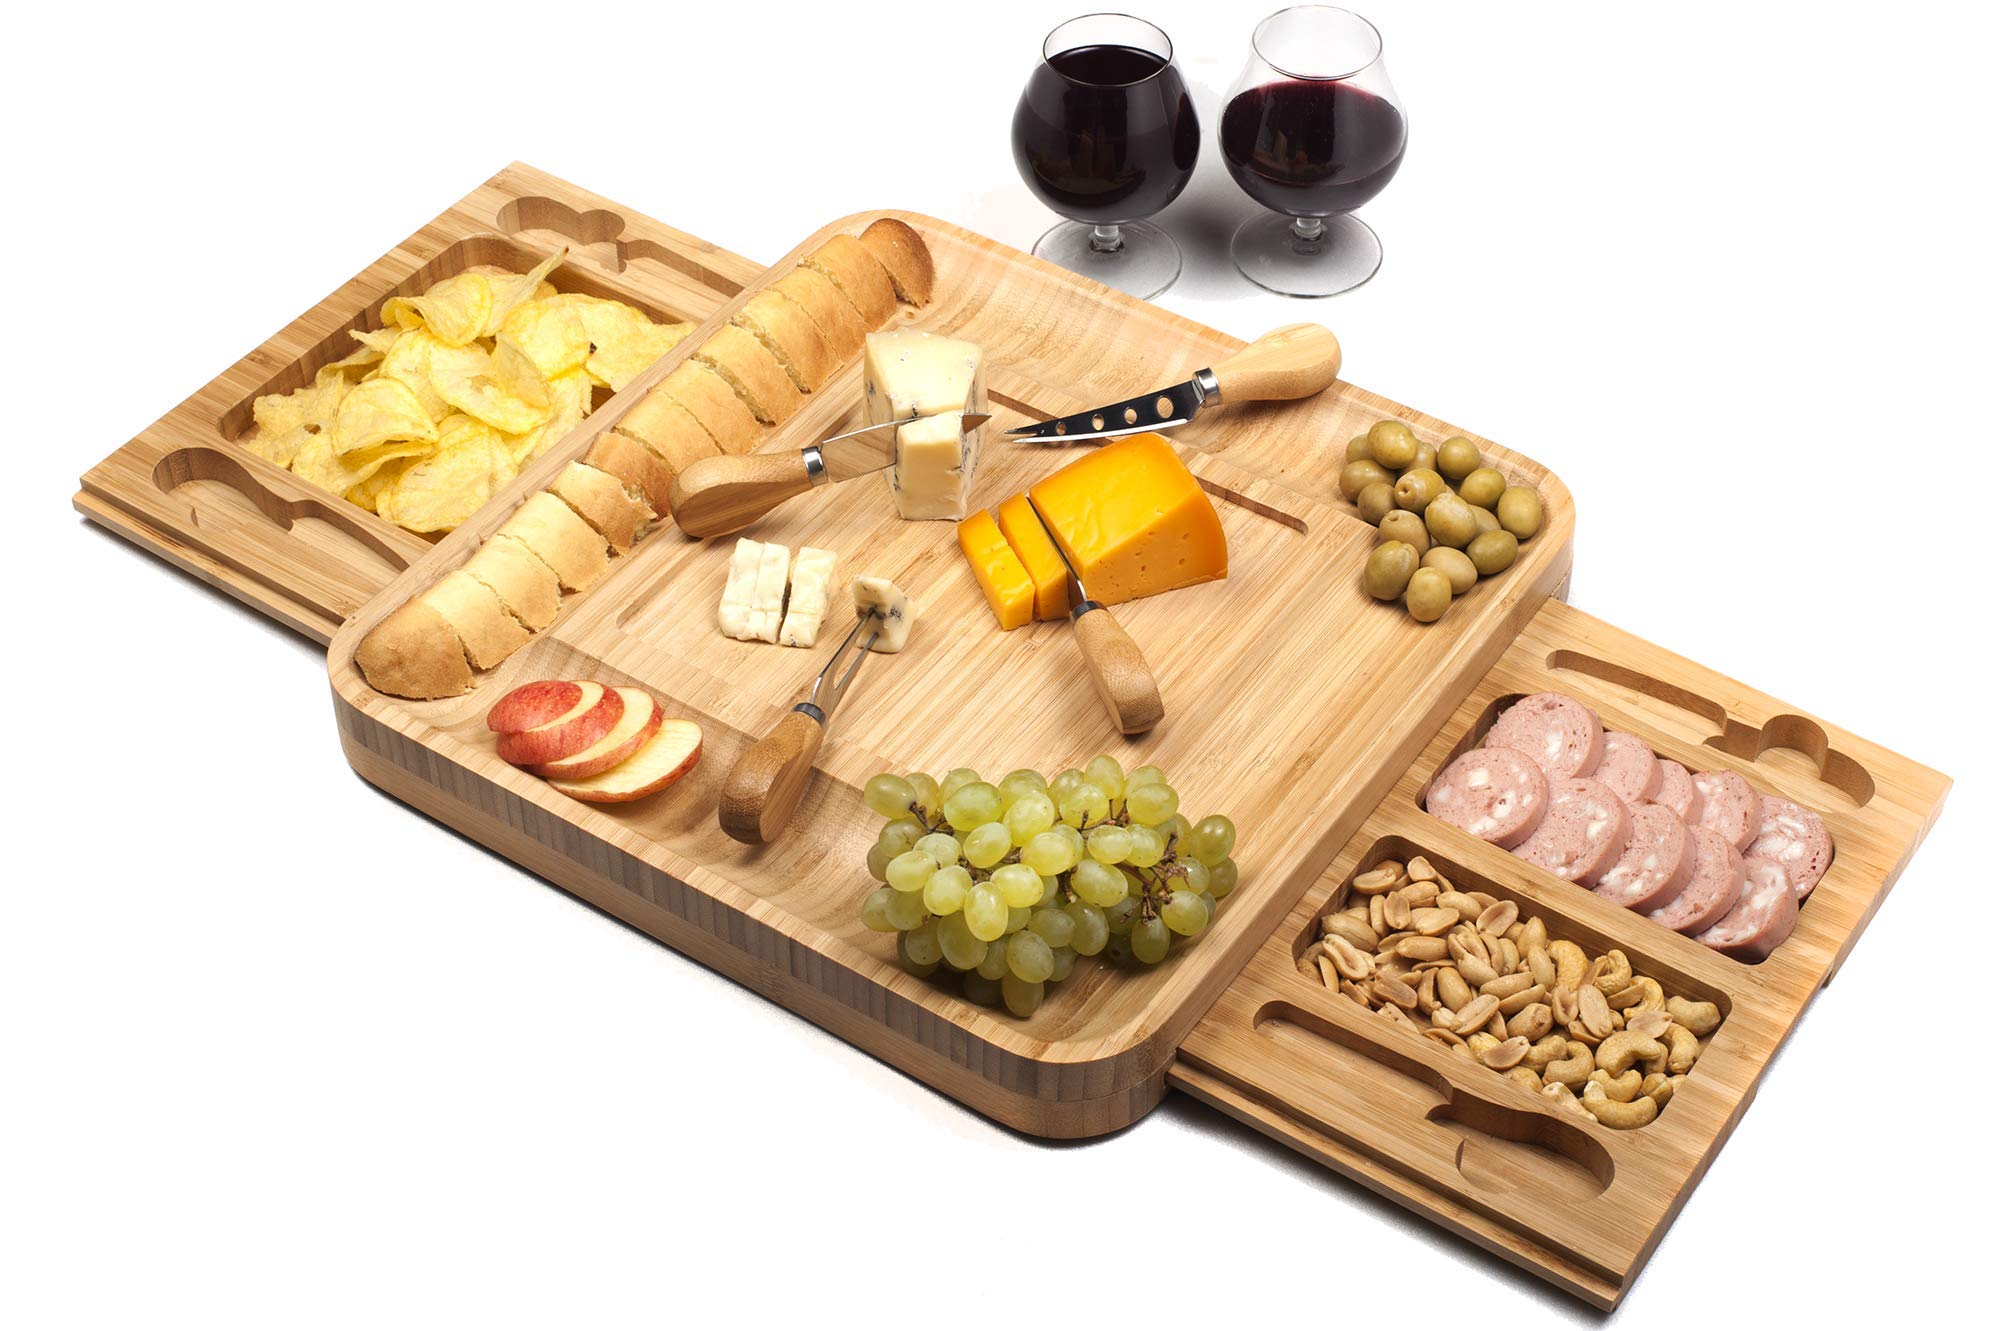 Bamboo Cheese Board With Stainless Steel Cutlery Set - Charcuterie Board With Removable Slate And Two Magnetic Detachable Drawers - Serving Platter With Cutlery Set For Cheese, Appetizers & Crackers